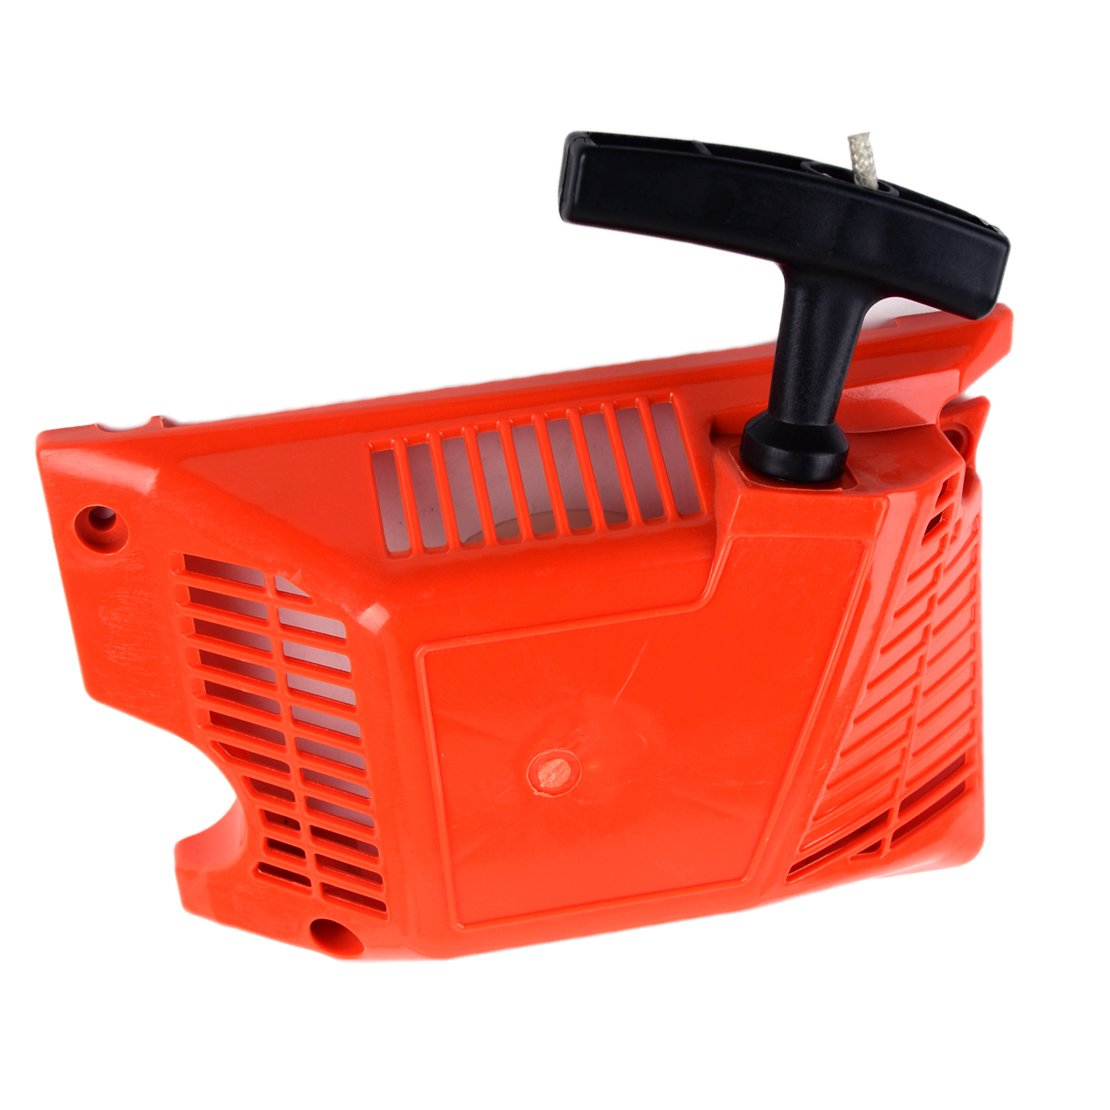 Recoil Pull Start Starter Fit for Chinese Chainsaw 4500 5200 5800 45cc 52cc 58cc